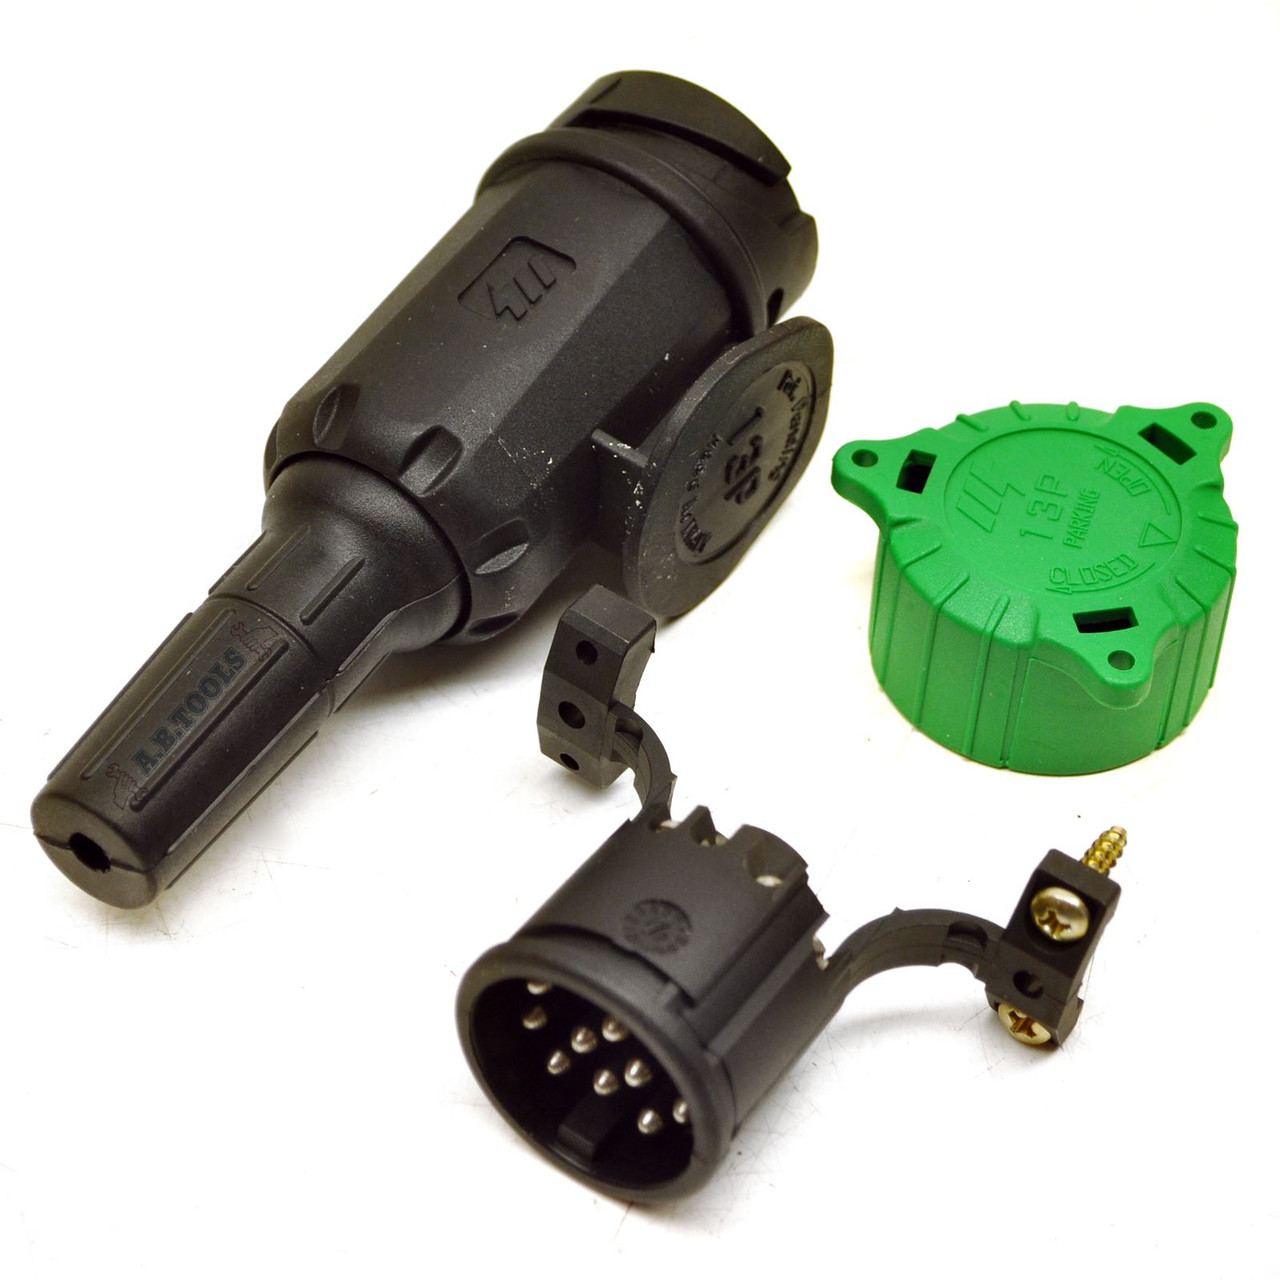 13 PIN Plug for Trailers and Caravans Electric Wring Plug TR135